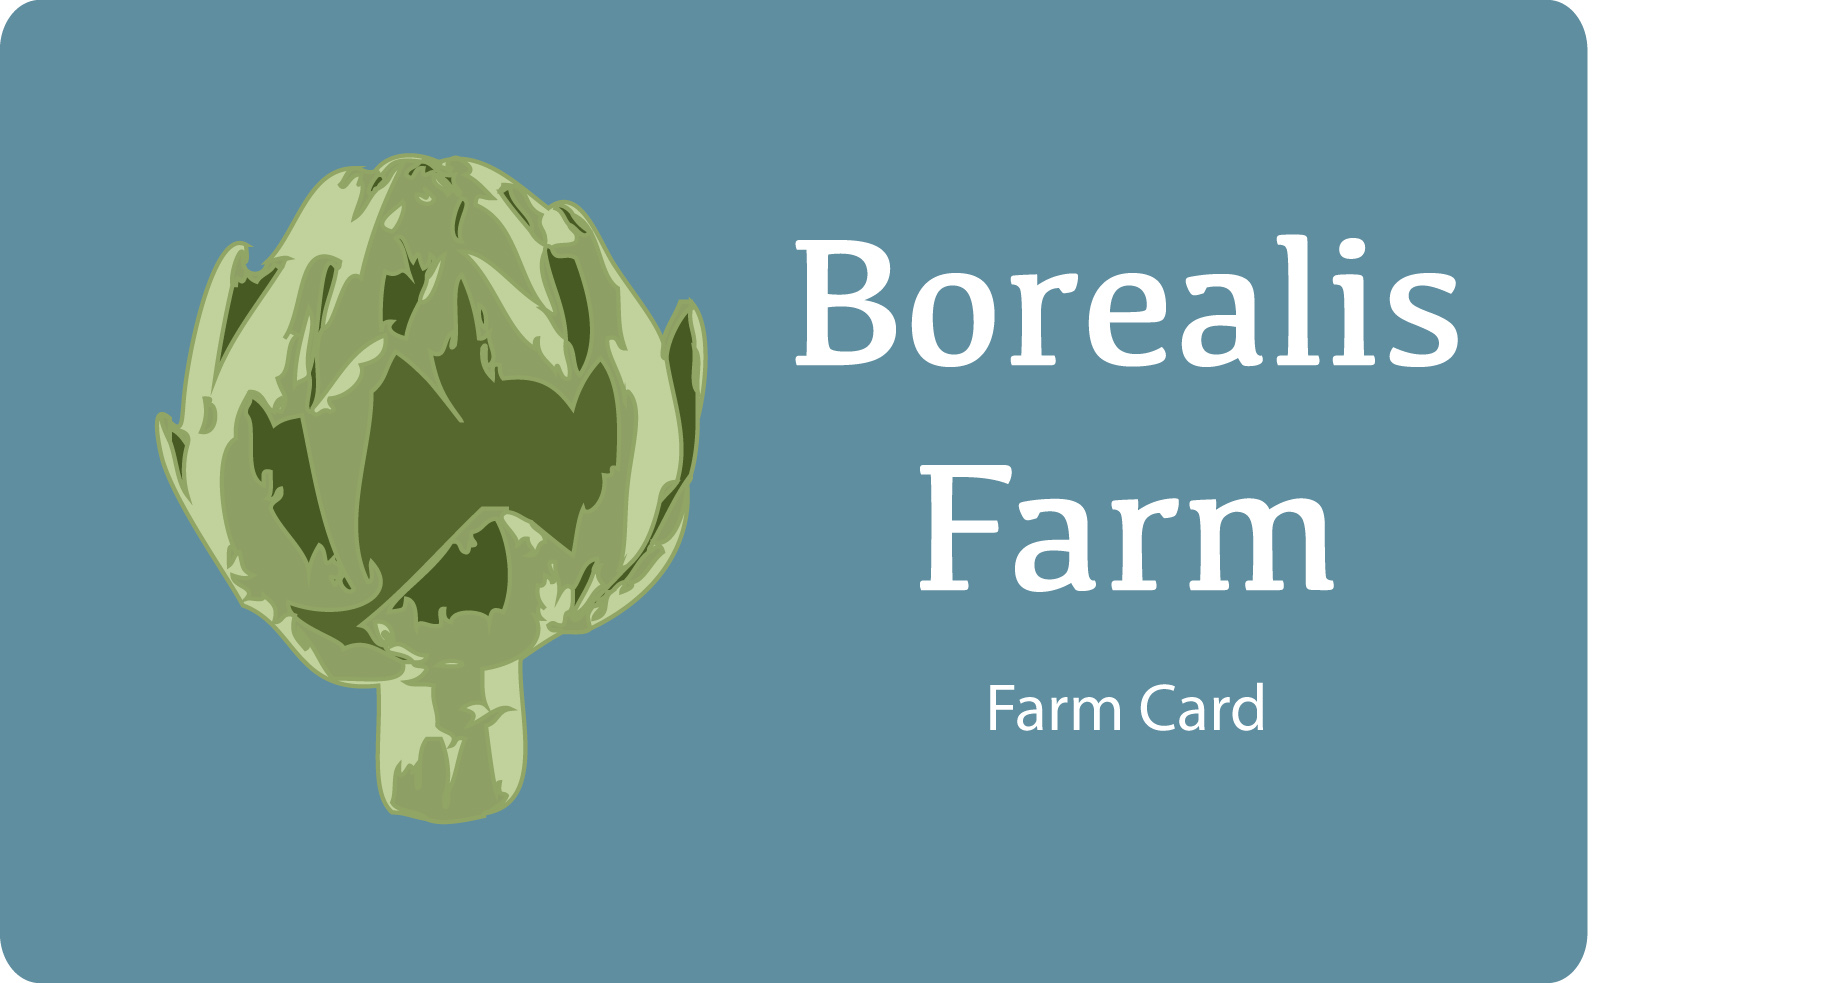 We are continuing to pilot our Farm Card program. Learn more  here!